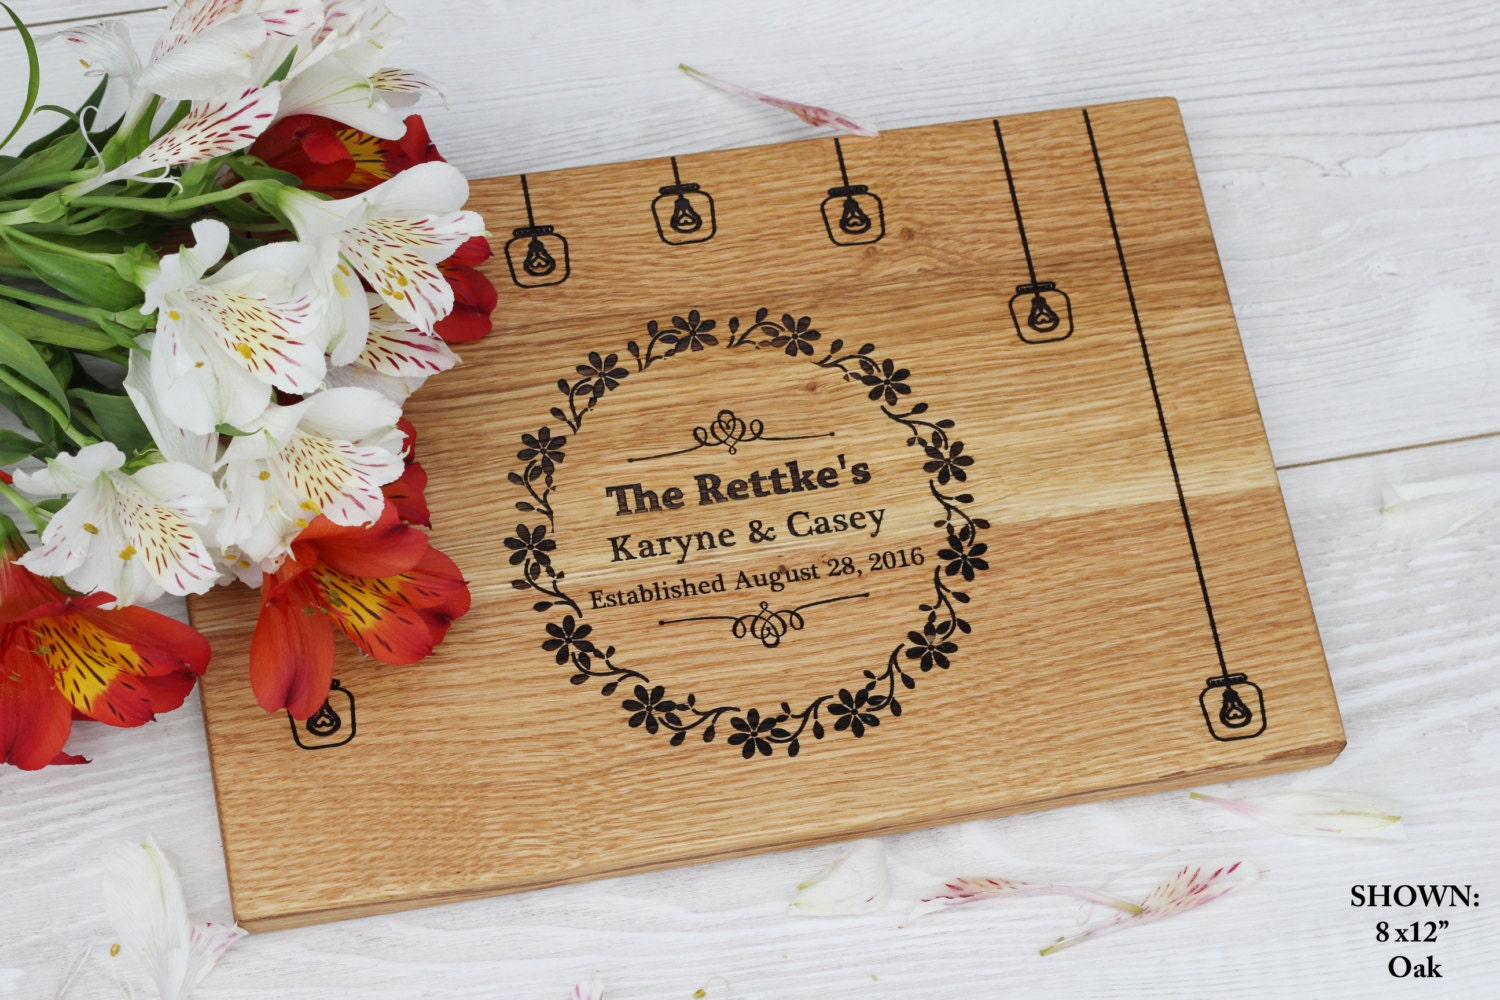 Wedding Gift Personalised: Wedding Gift Personalized Cutting Board Rustic Wedding